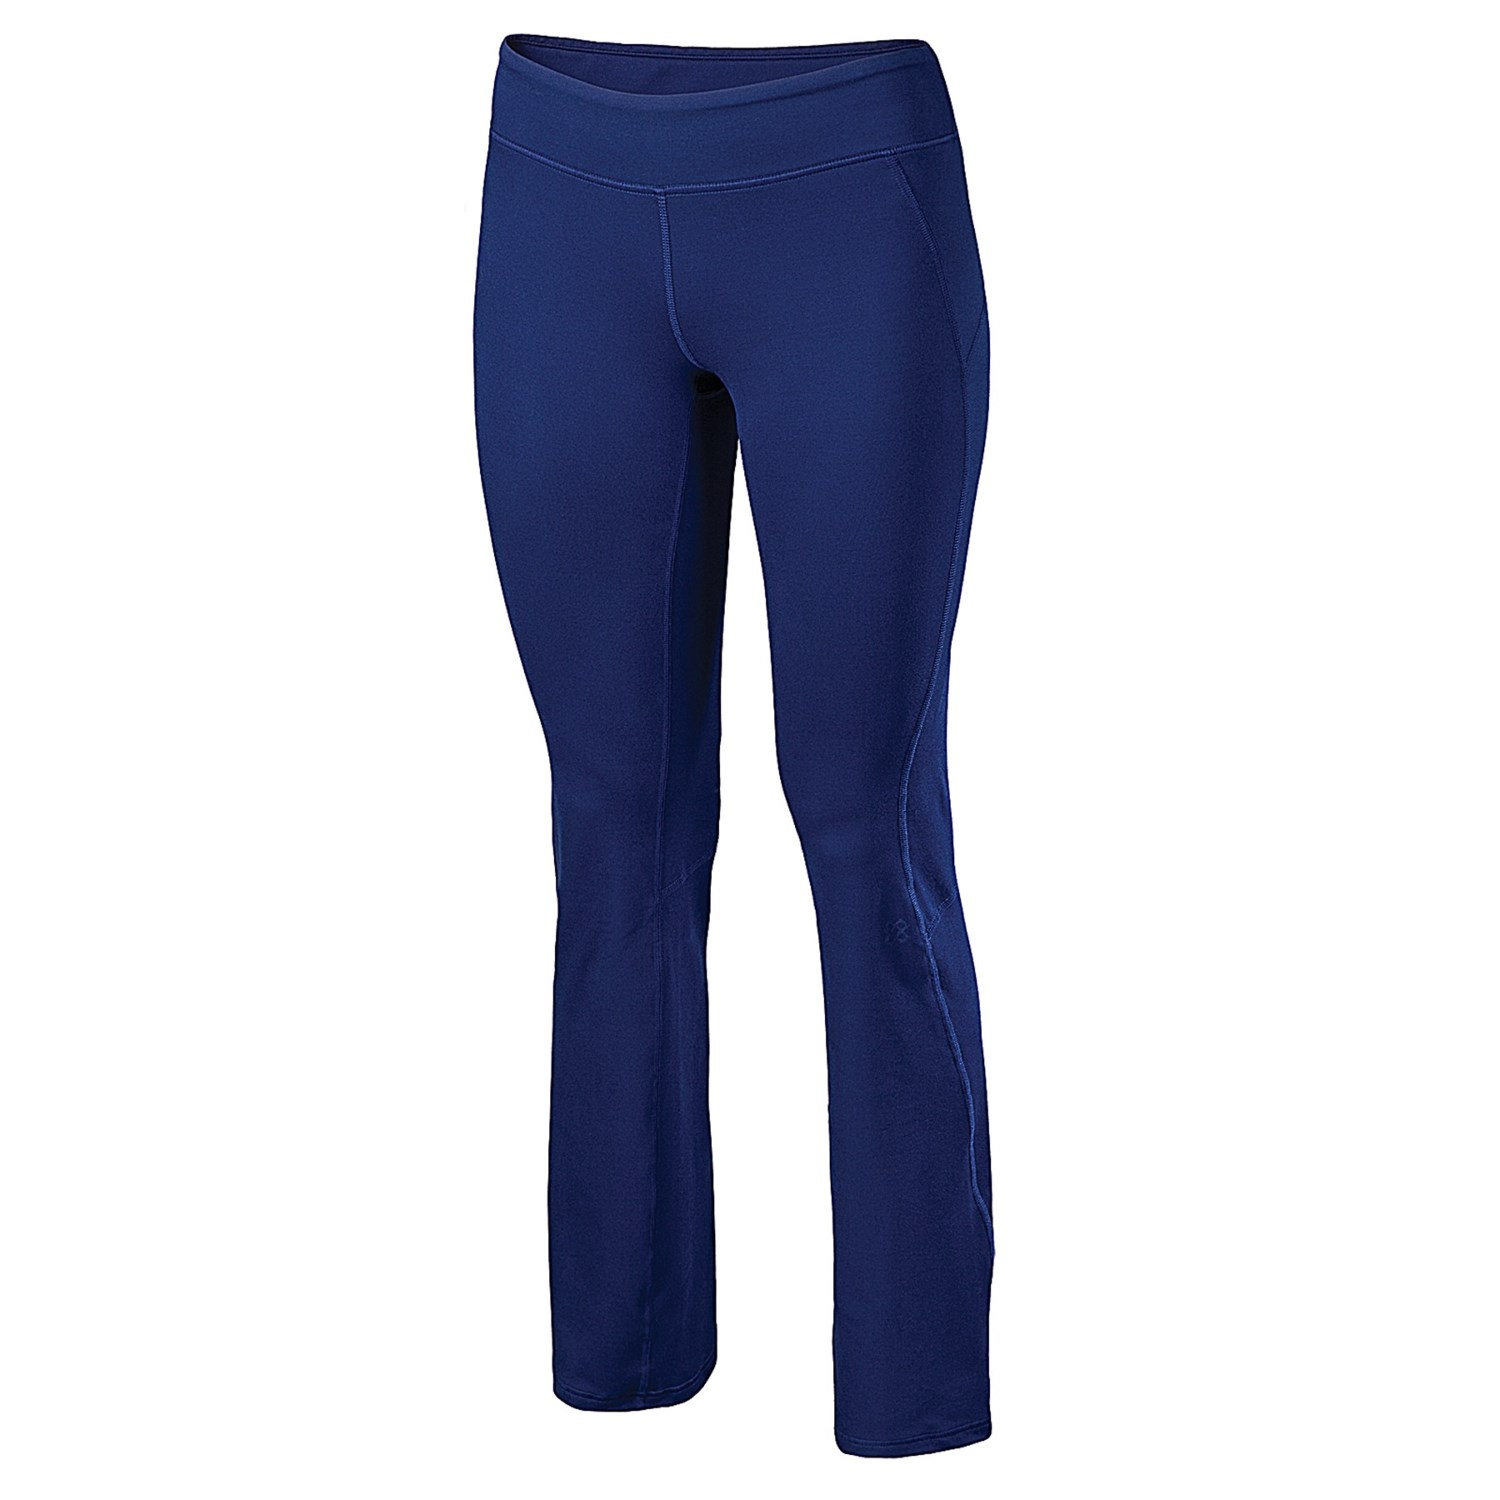 Innovative Were Seriously Crushing On Highwaisted Workout Pants  Weve Been Reaching For Them Before Every  Going Into A Deeper Bind In Yoga? Youre Covered These